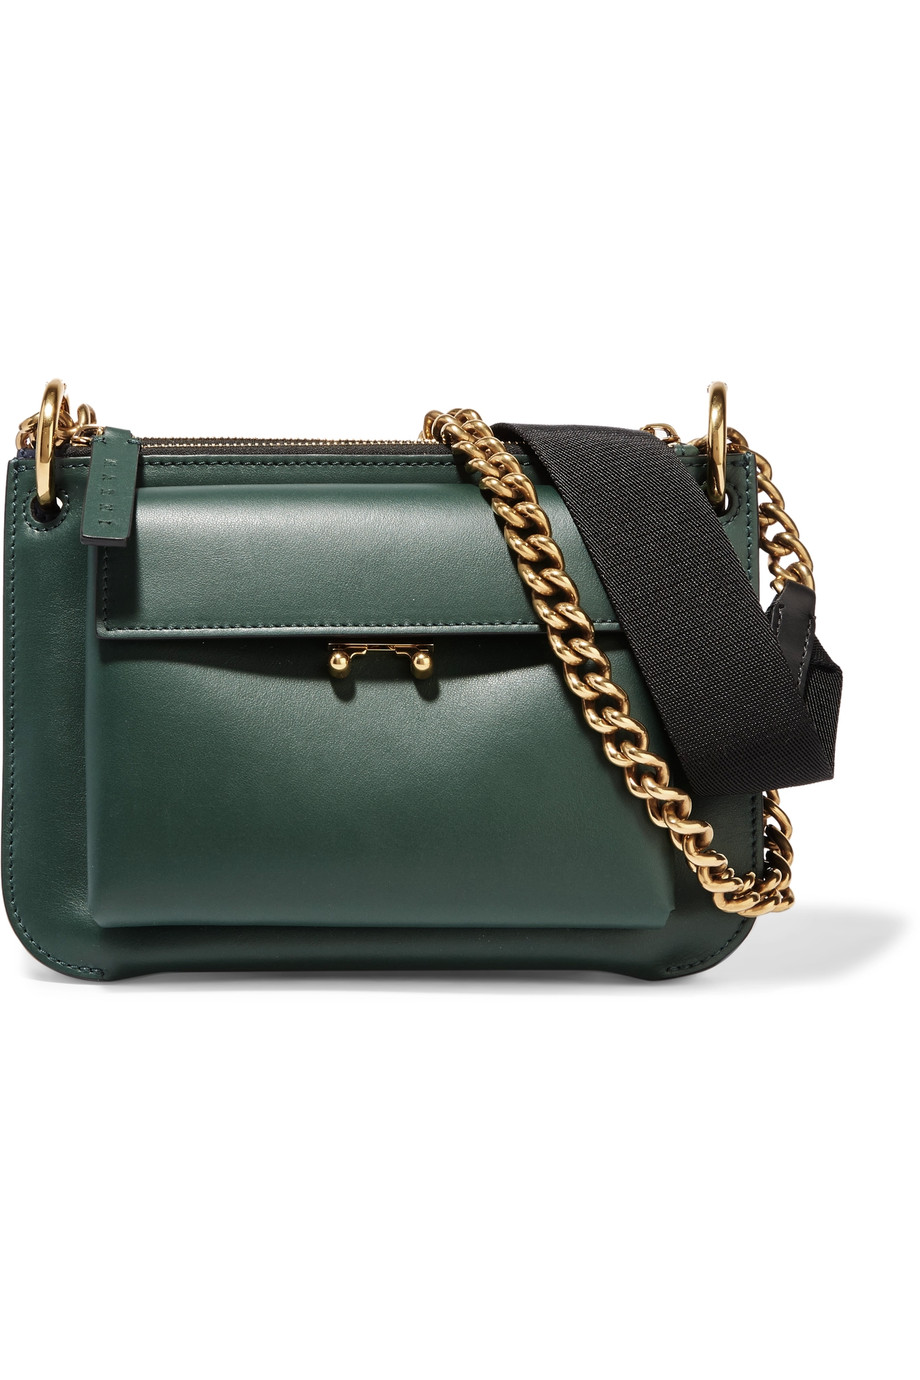 Pocket two-tone leather shoulder bag, Marni